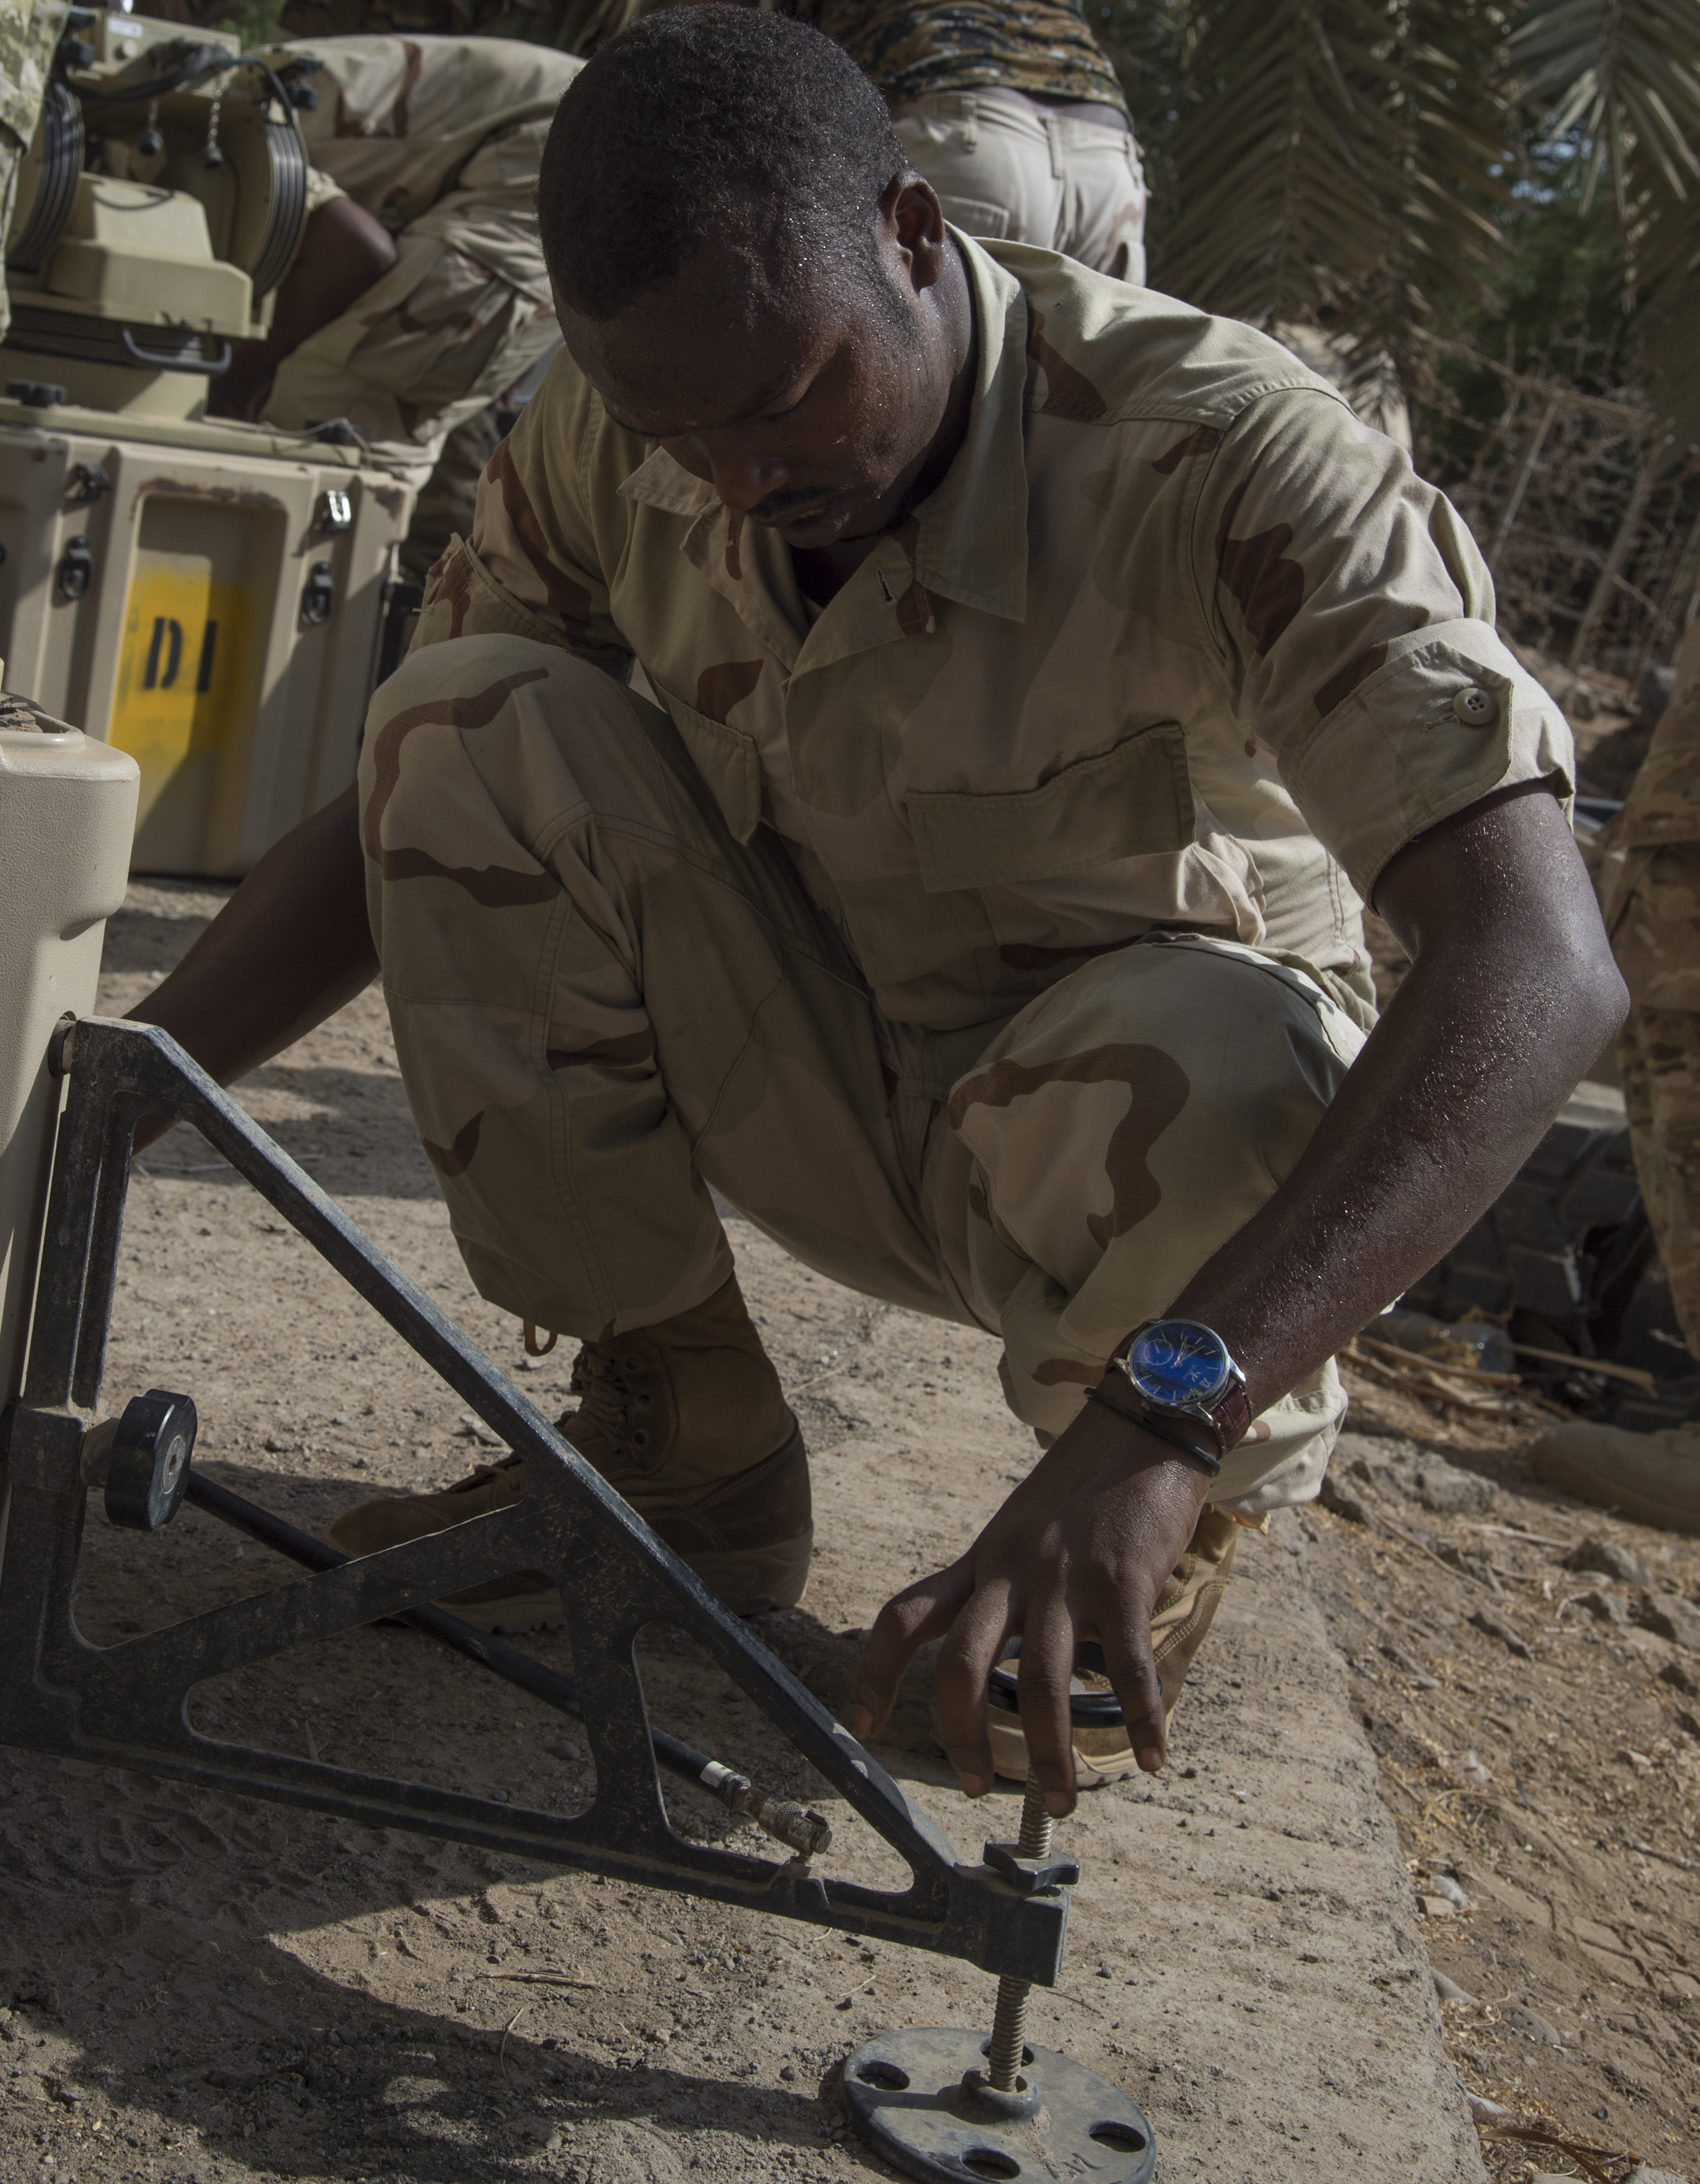 A Djibouti Armed Forces (FAD) soldier secures the legs to an Africa Data Sharing Network (ADSN) satellite during a best practices training with U.S. Army Soldiers Sept. 28, 2016, at FAD Headquarters in Djibouti. While conducting the best practices training, the U.S. Army, assigned to Combined Joint Task-Horn of Africa, also held an ADSN validation with the FAD soldiers to prepare them to deploy to Somalia.  The ADSN provides network and Voice over Internet Protocol capabilities between several African countries participating in the Africa Union Mission in Somalia. (U.S. Air Force photo by Staff Sgt. Eric Summers Jr.)